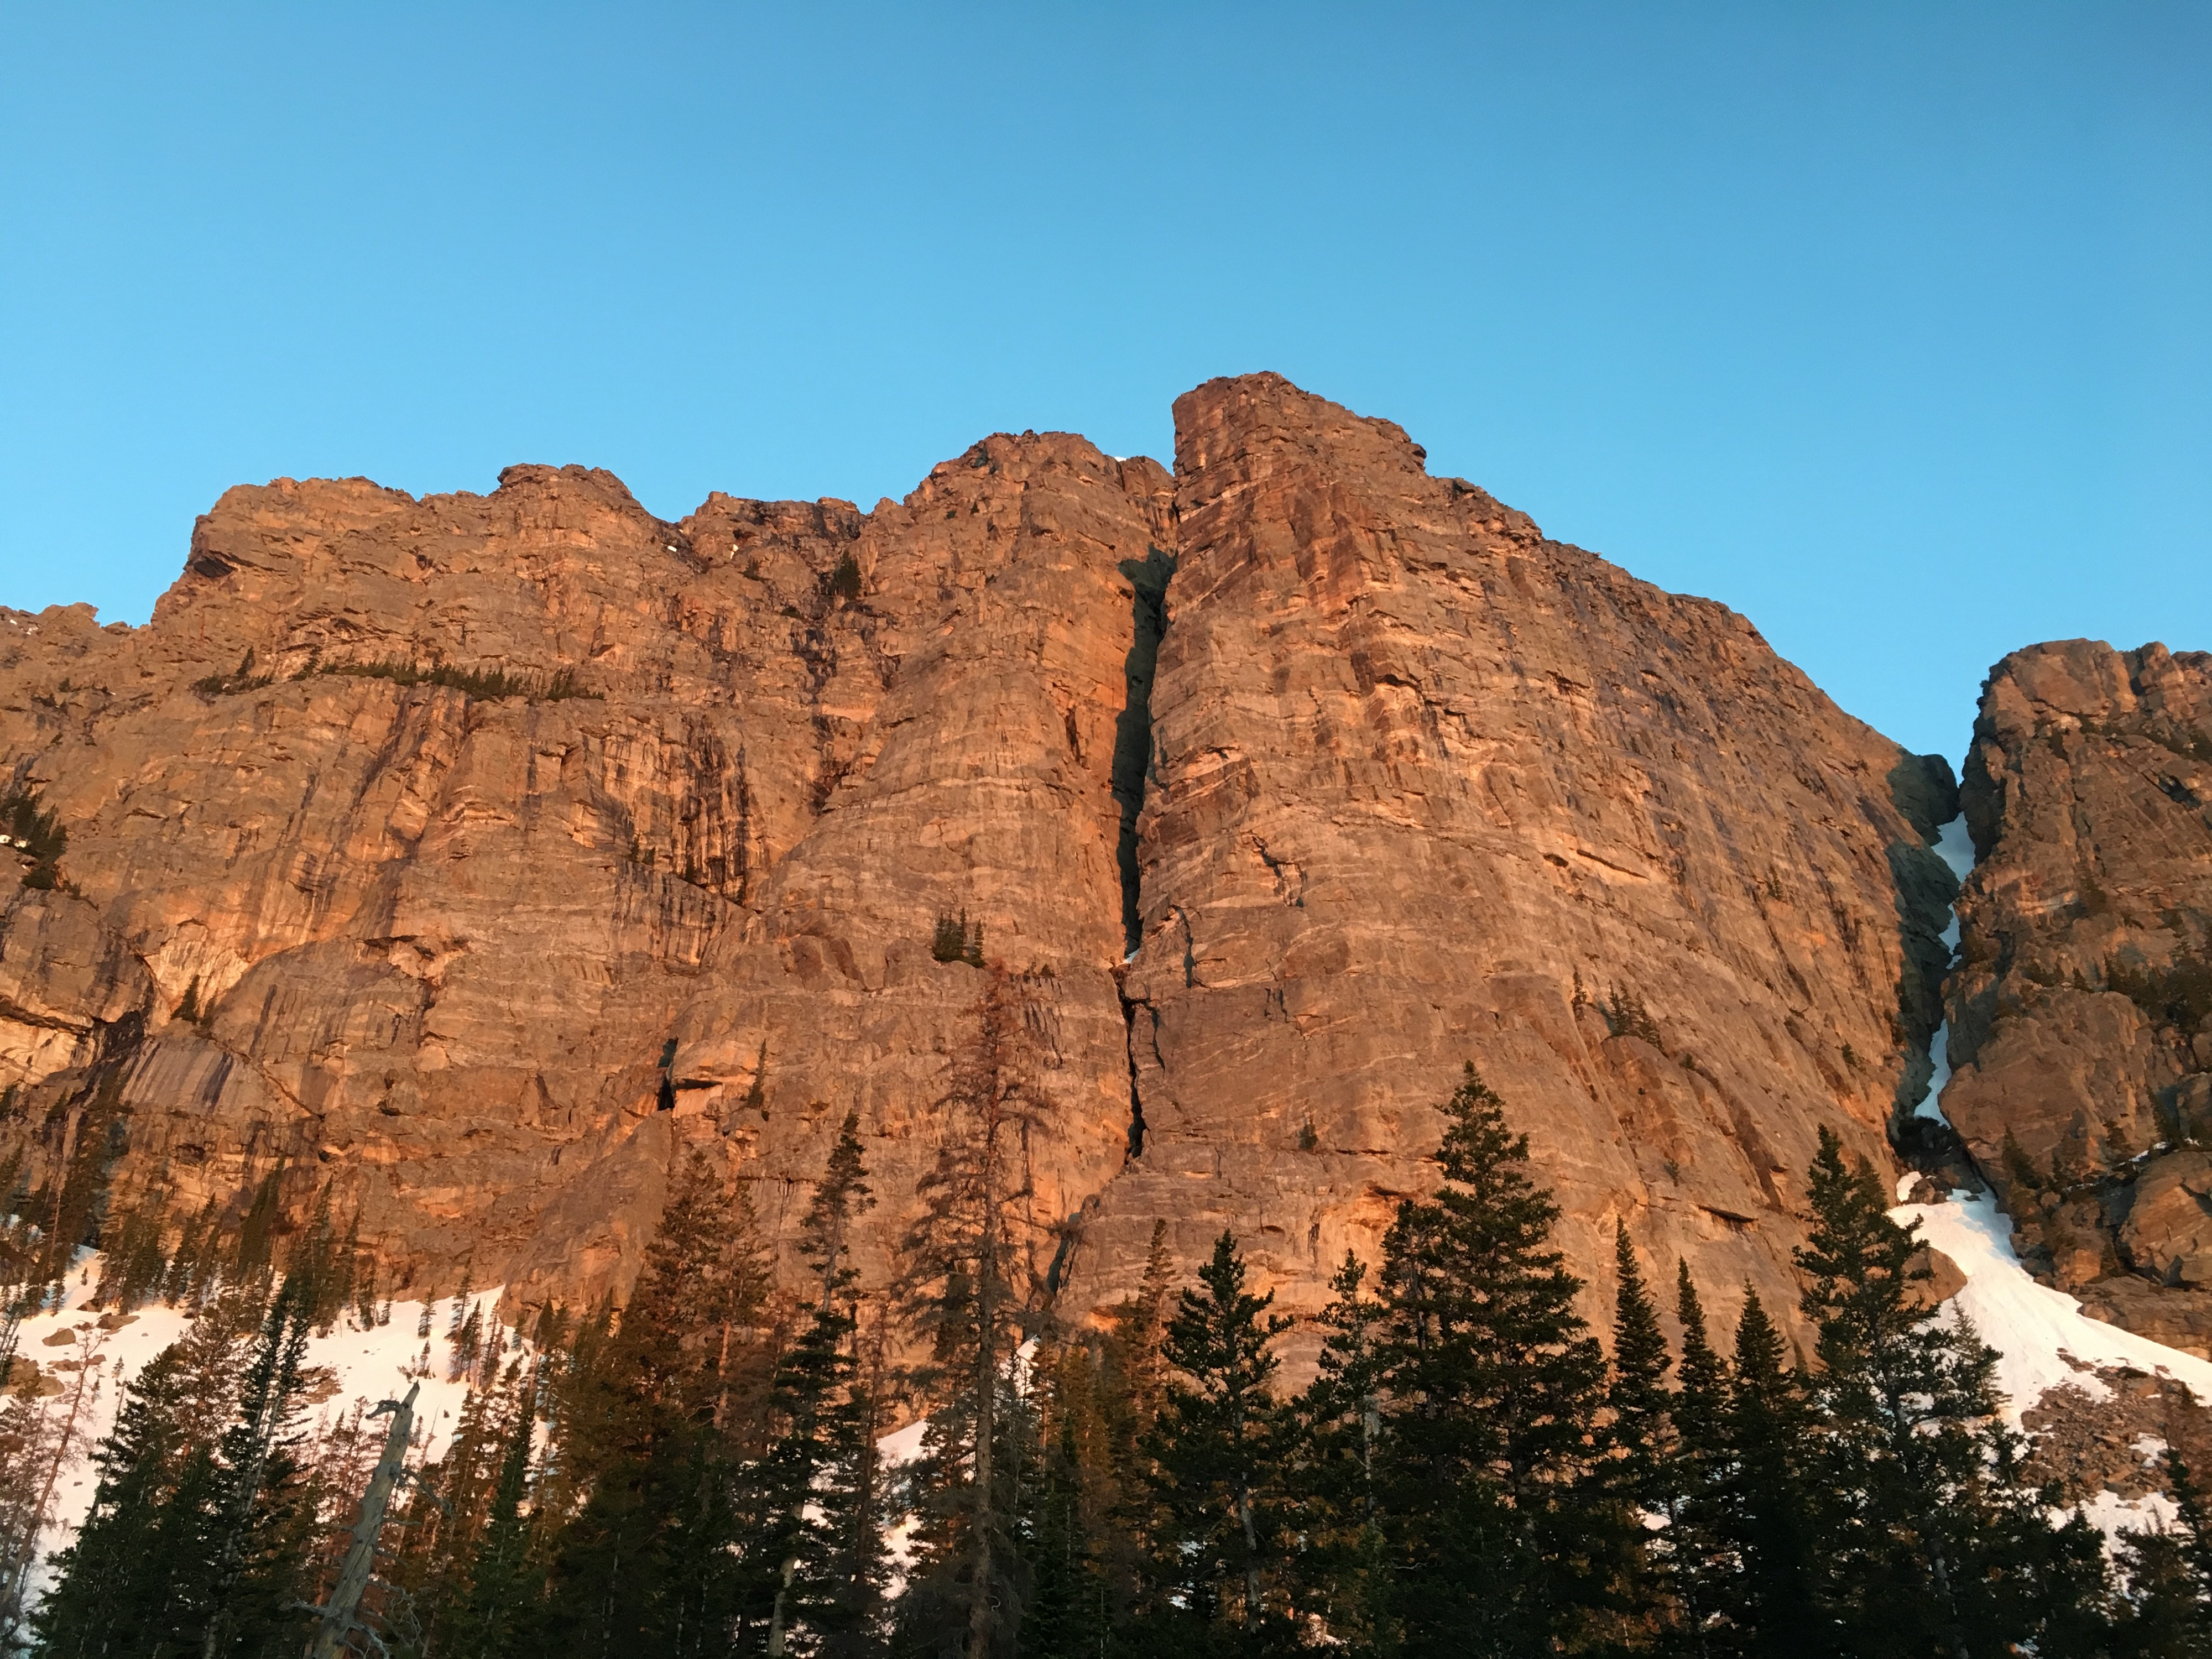 Alpenglow makes a rock wall glow pink against a luminous blue sky.